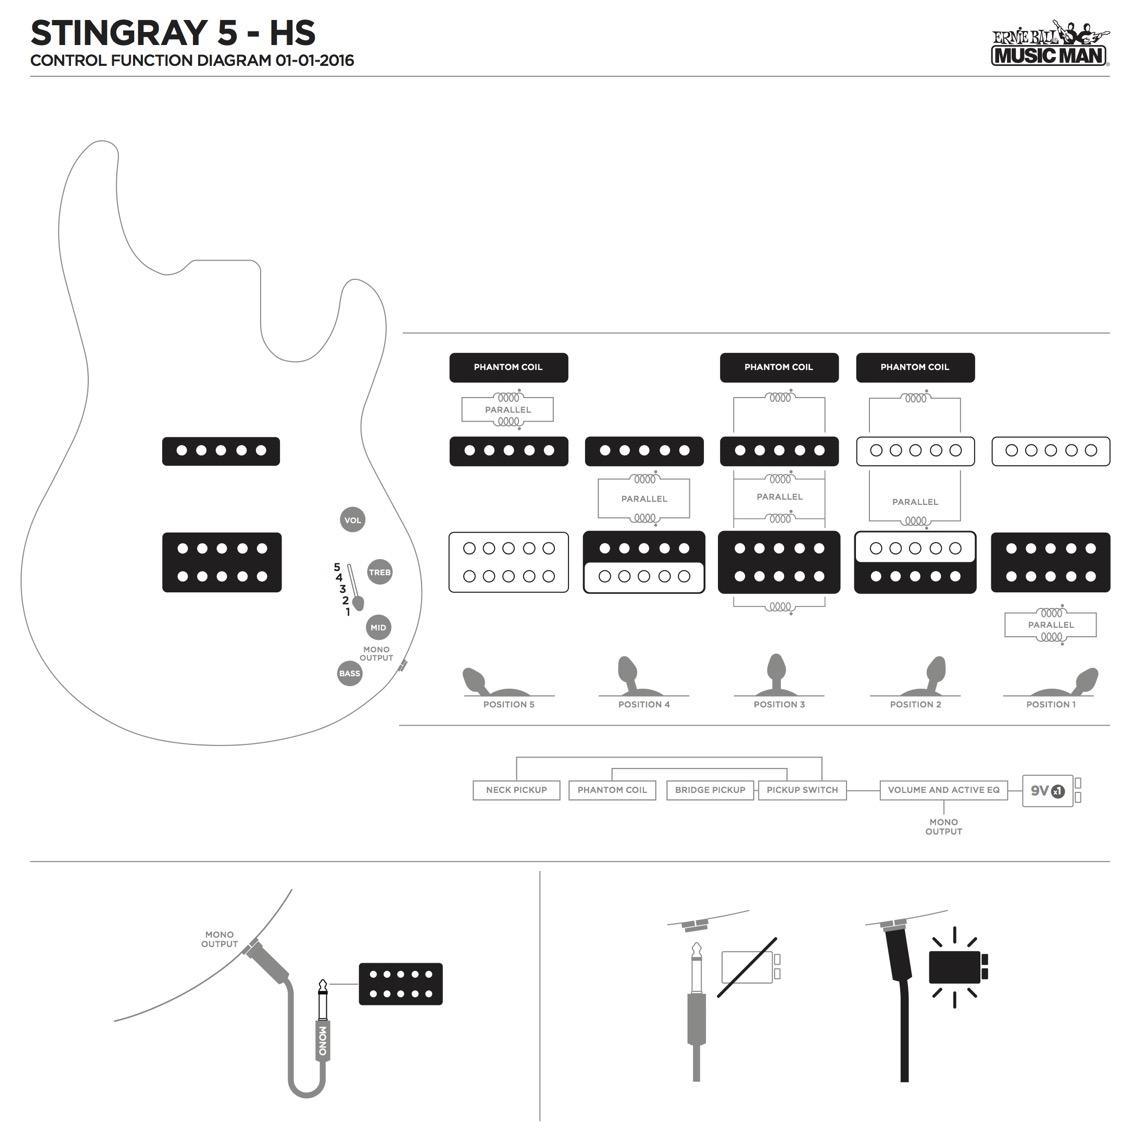 Stingray 5 Basses Ernie Ball Music Man Free Download Gsr200 Wiring Diagram Pickup Configuration 2